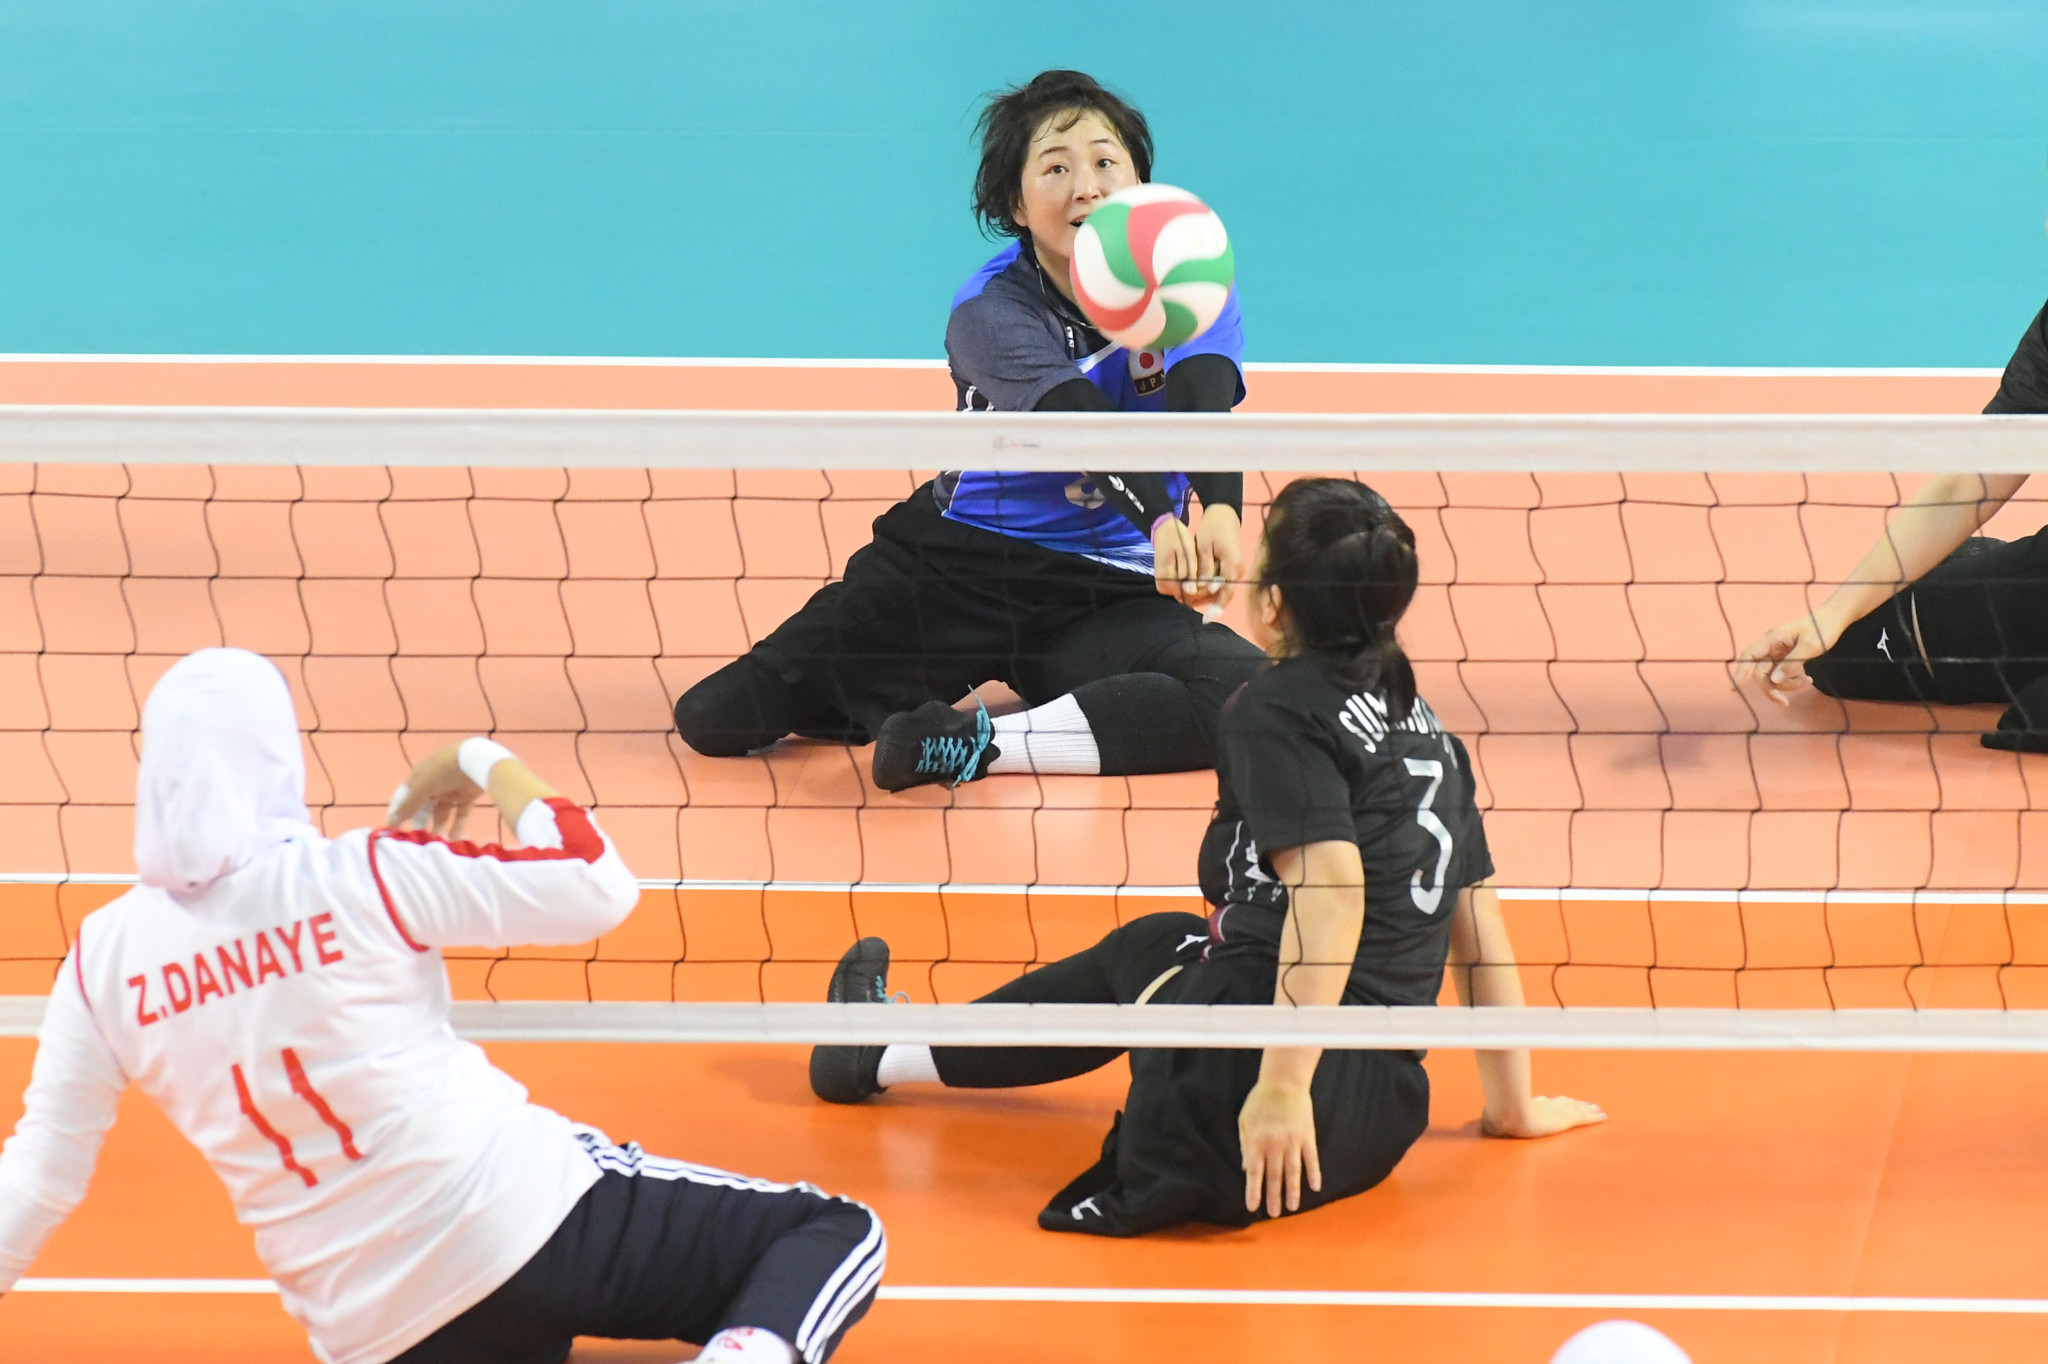 The winner of the qualifier will secure the last place in the women's event at Tokyo 2020 ©Getty Images